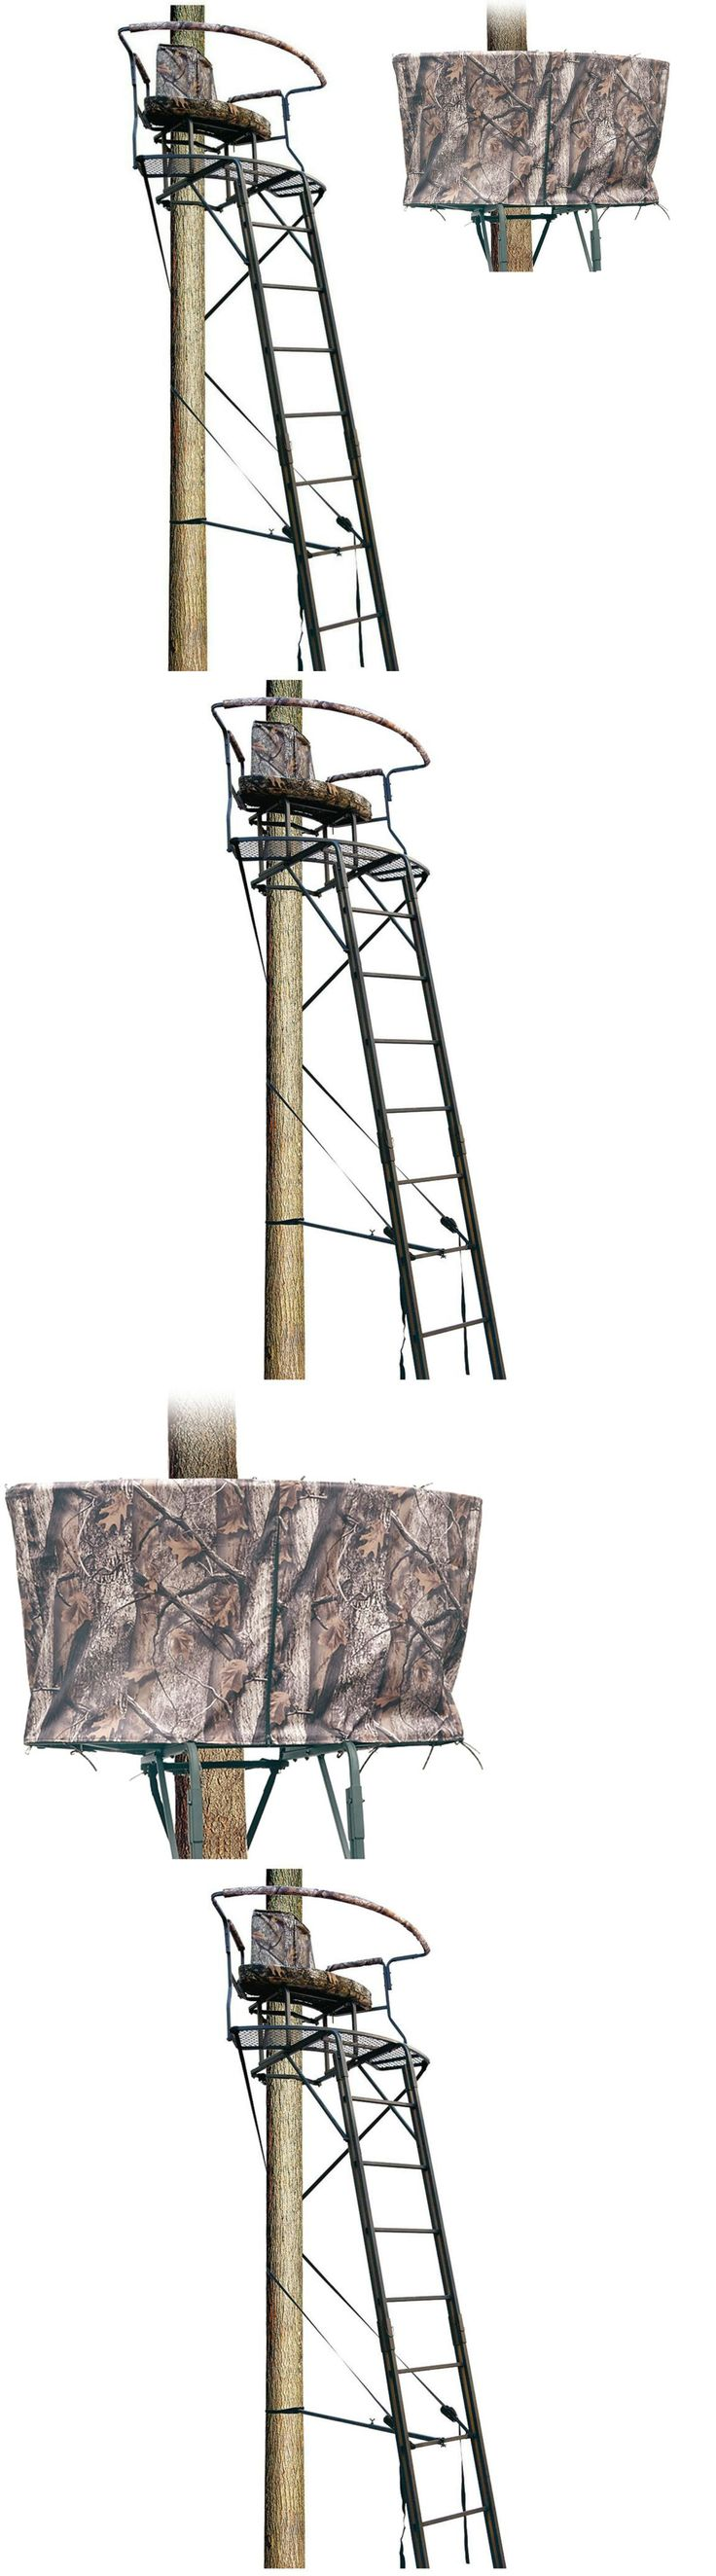 Tree Stands 52508: 2 Man Deer Hunting Ladder Tree Stand 17.5 Climbing Sniper Rifle Bow Treestand -> BUY IT NOW ONLY: $260.15 on eBay!